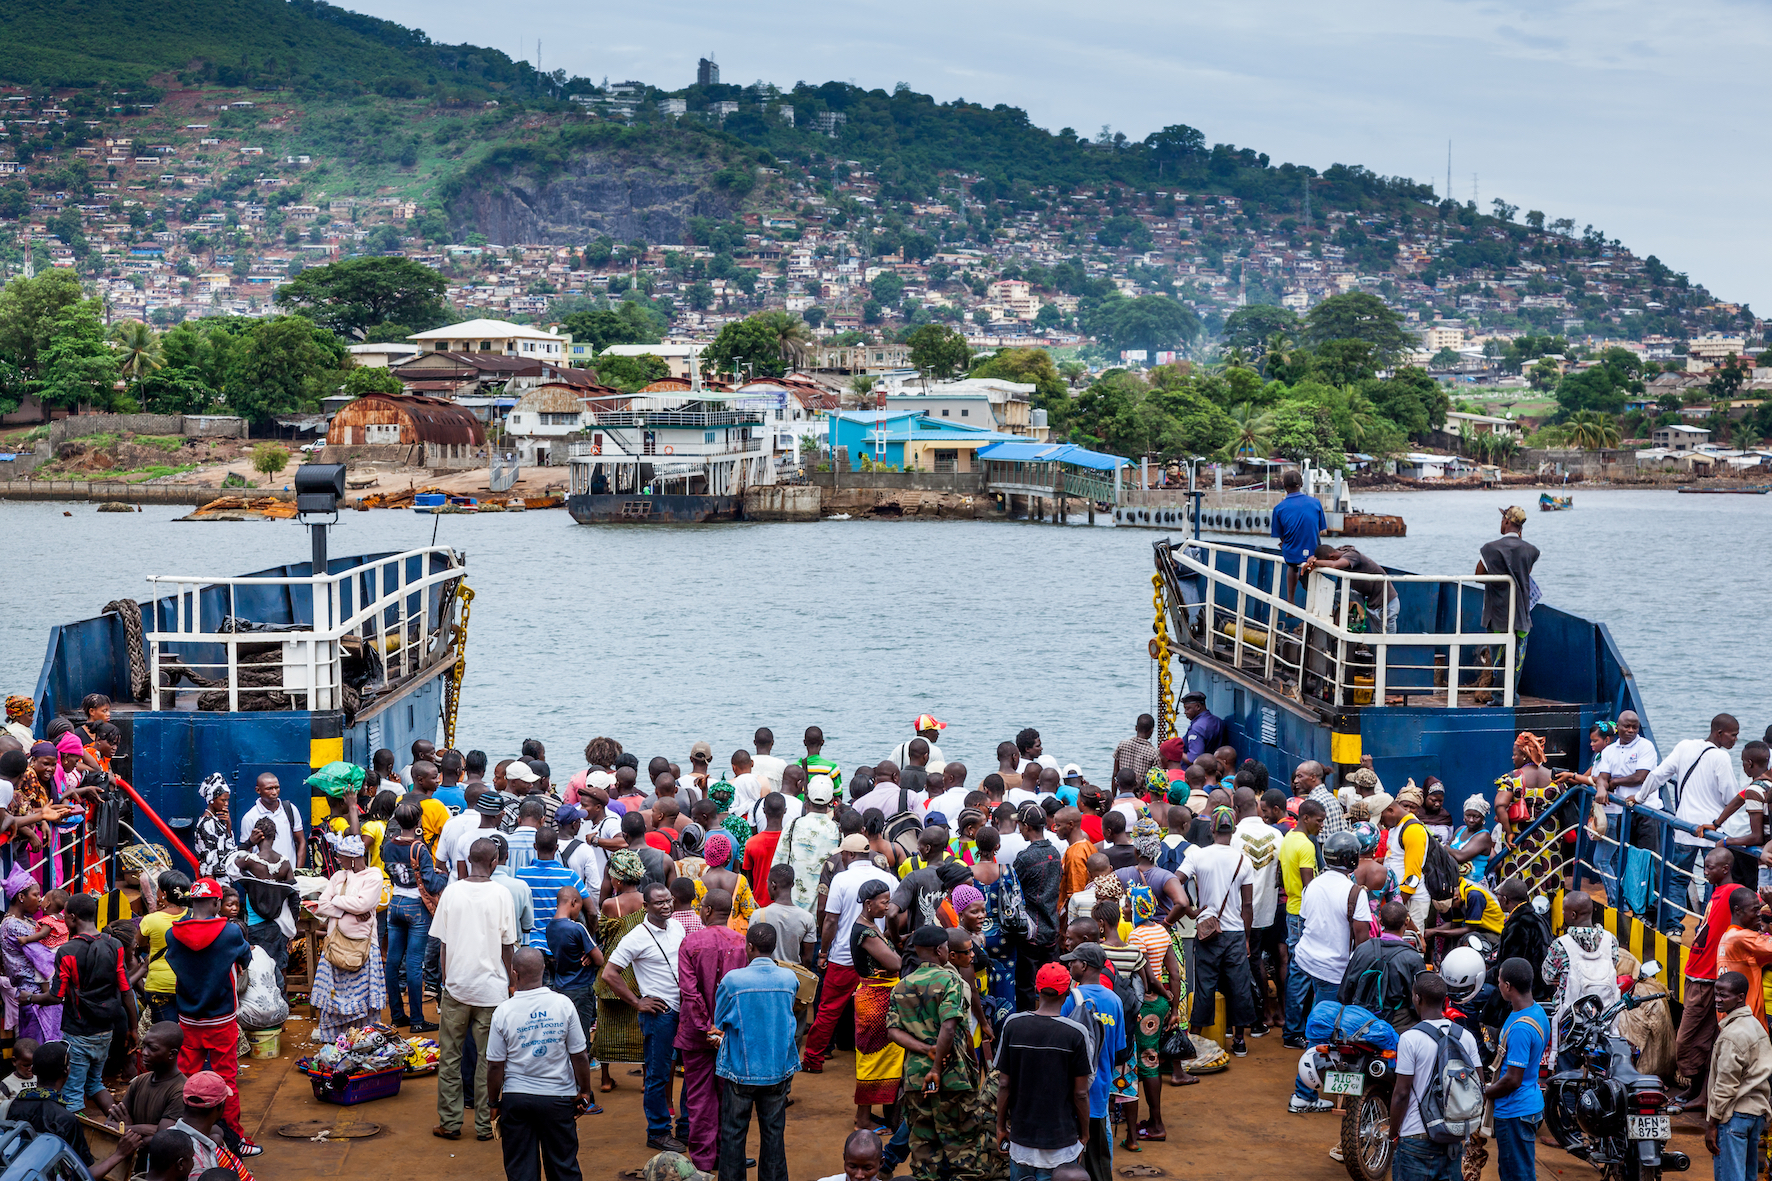 Sierra Leone: Squaring up to its challenges